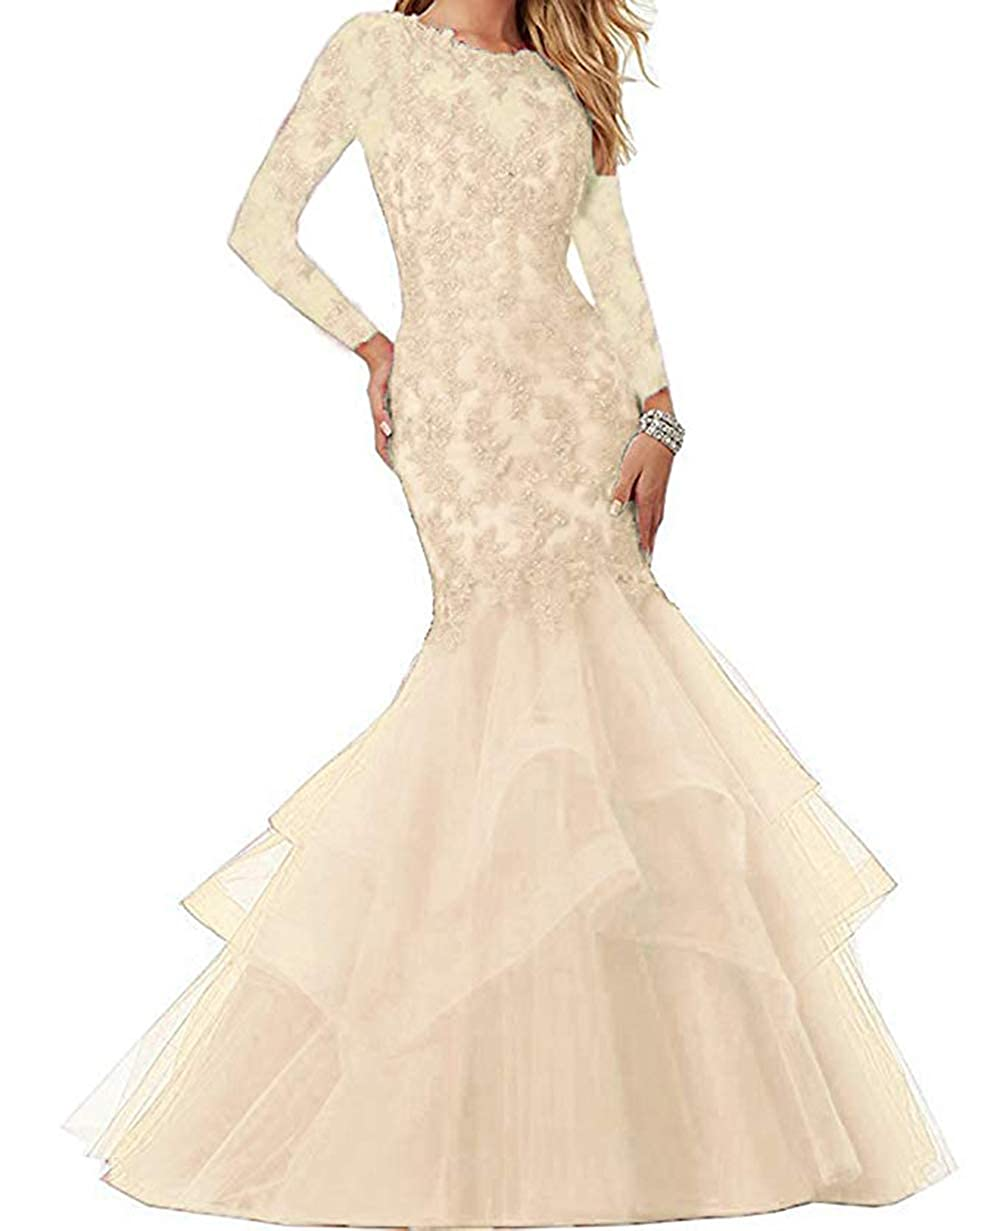 Champagne Women's Mermaid Prom Dresses Beaded Lace Appliques Formal Evening Gowns Long Sleeves